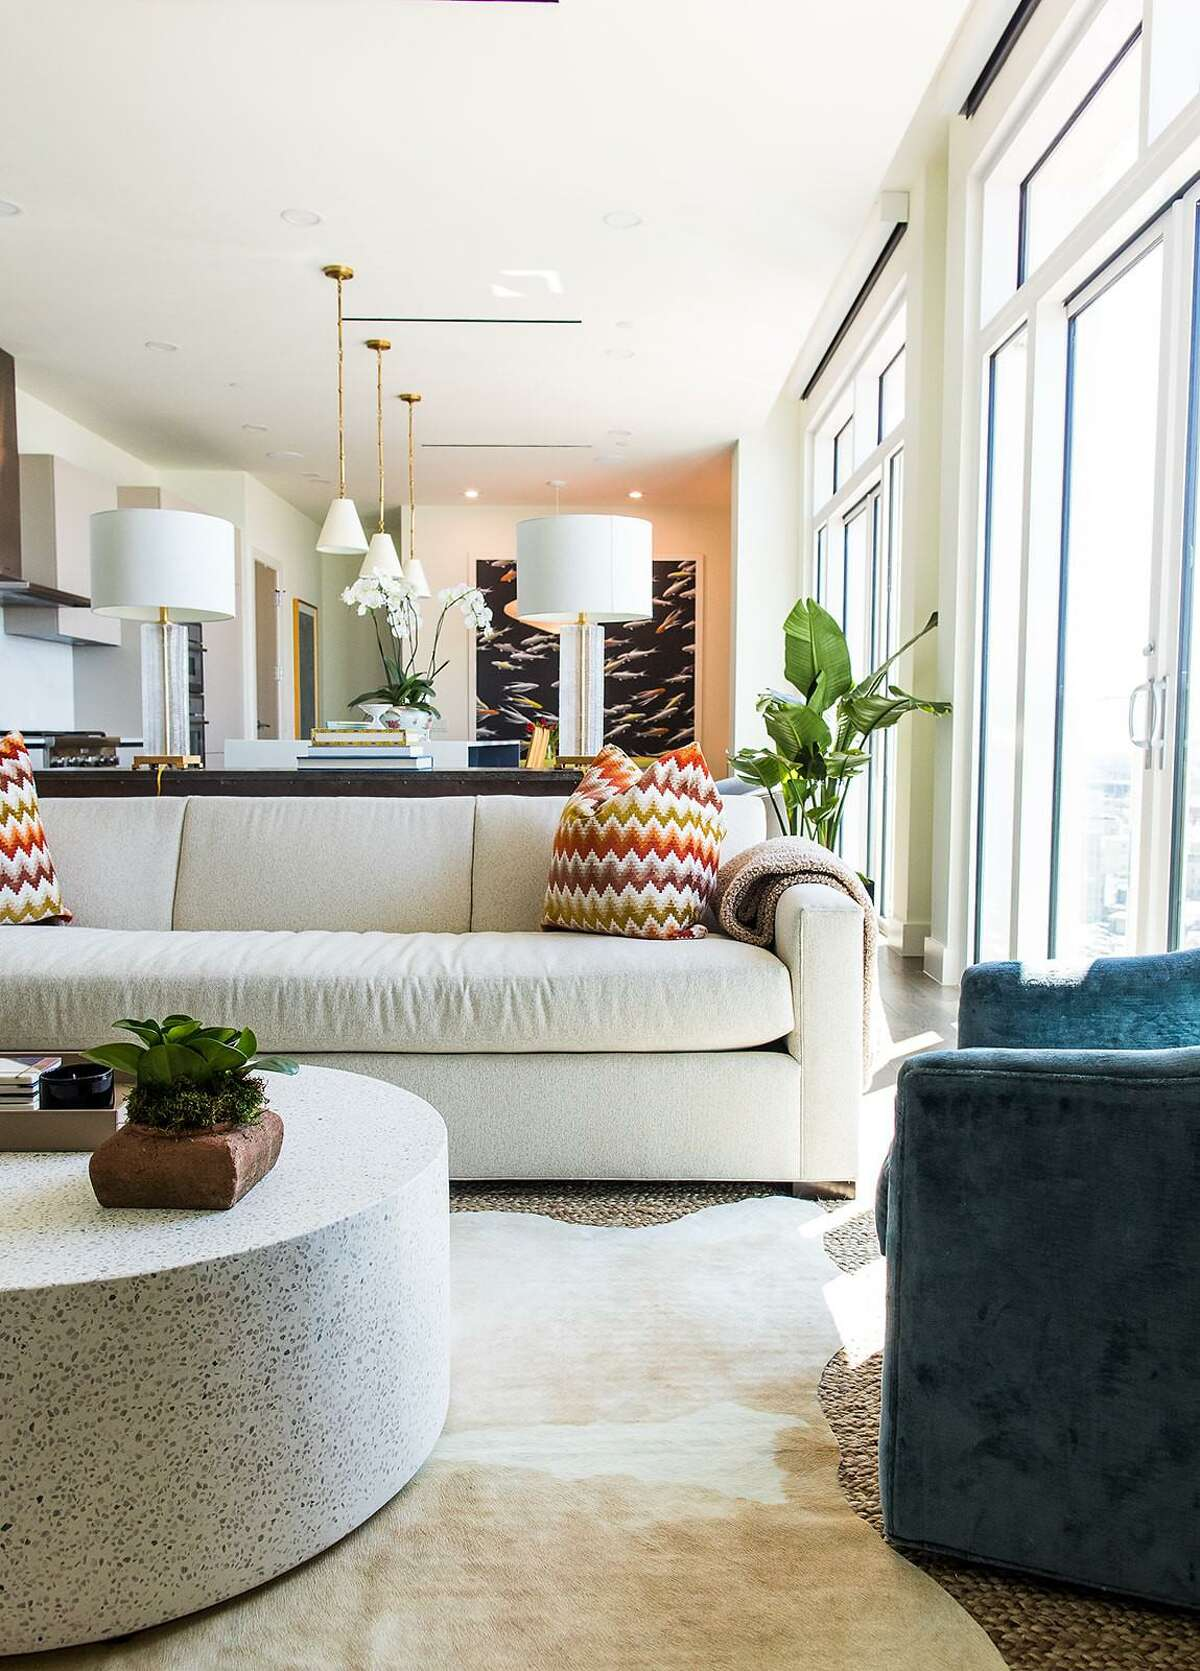 Because the couple who bought the two bedroom, 2 ½-bathroom unit in The Arts Residences before the building broke ground, they were able to make the kinds of changes that really made it theirs.